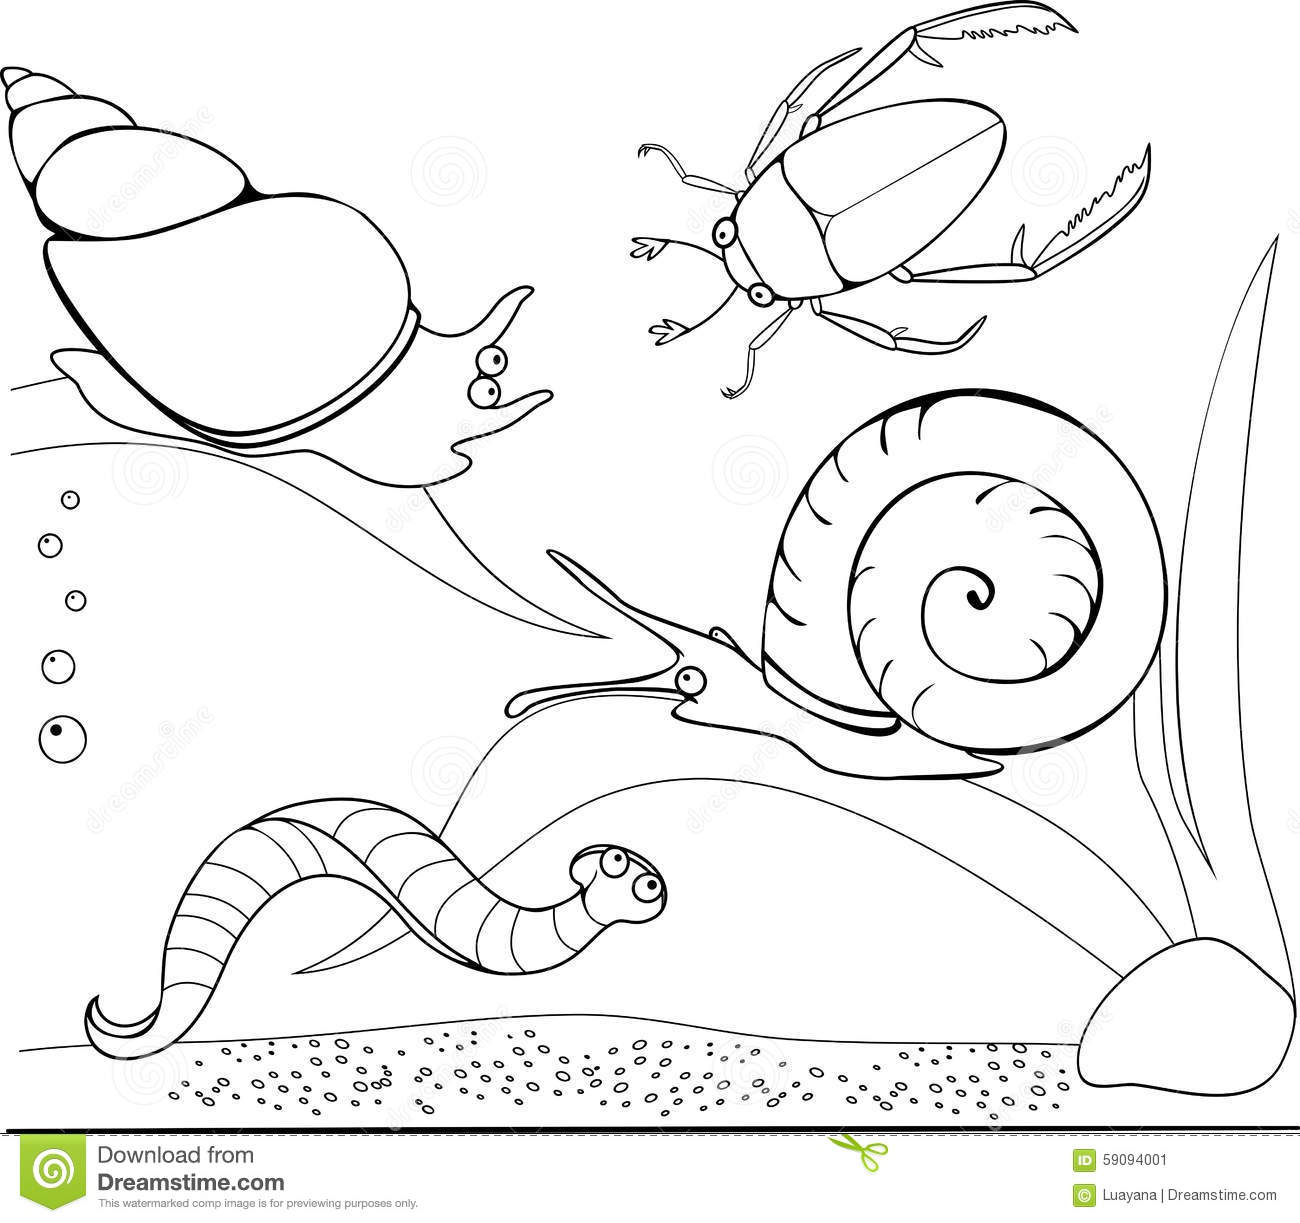 Coloring Pond Stock Vector Illustration Of Entertainment